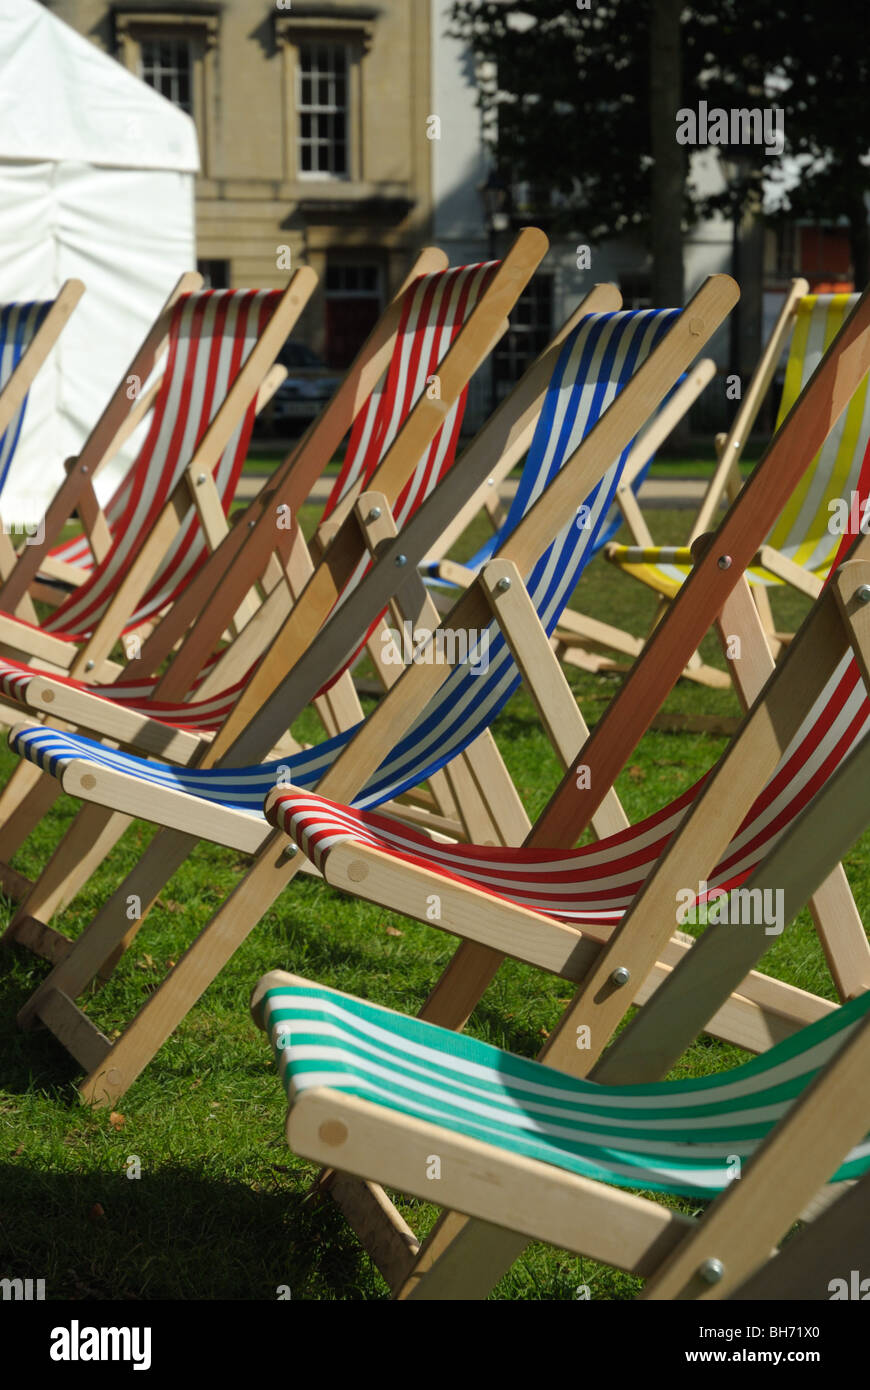 Deckchairs  set out in a city park ready for a summer event performance - Stock Image